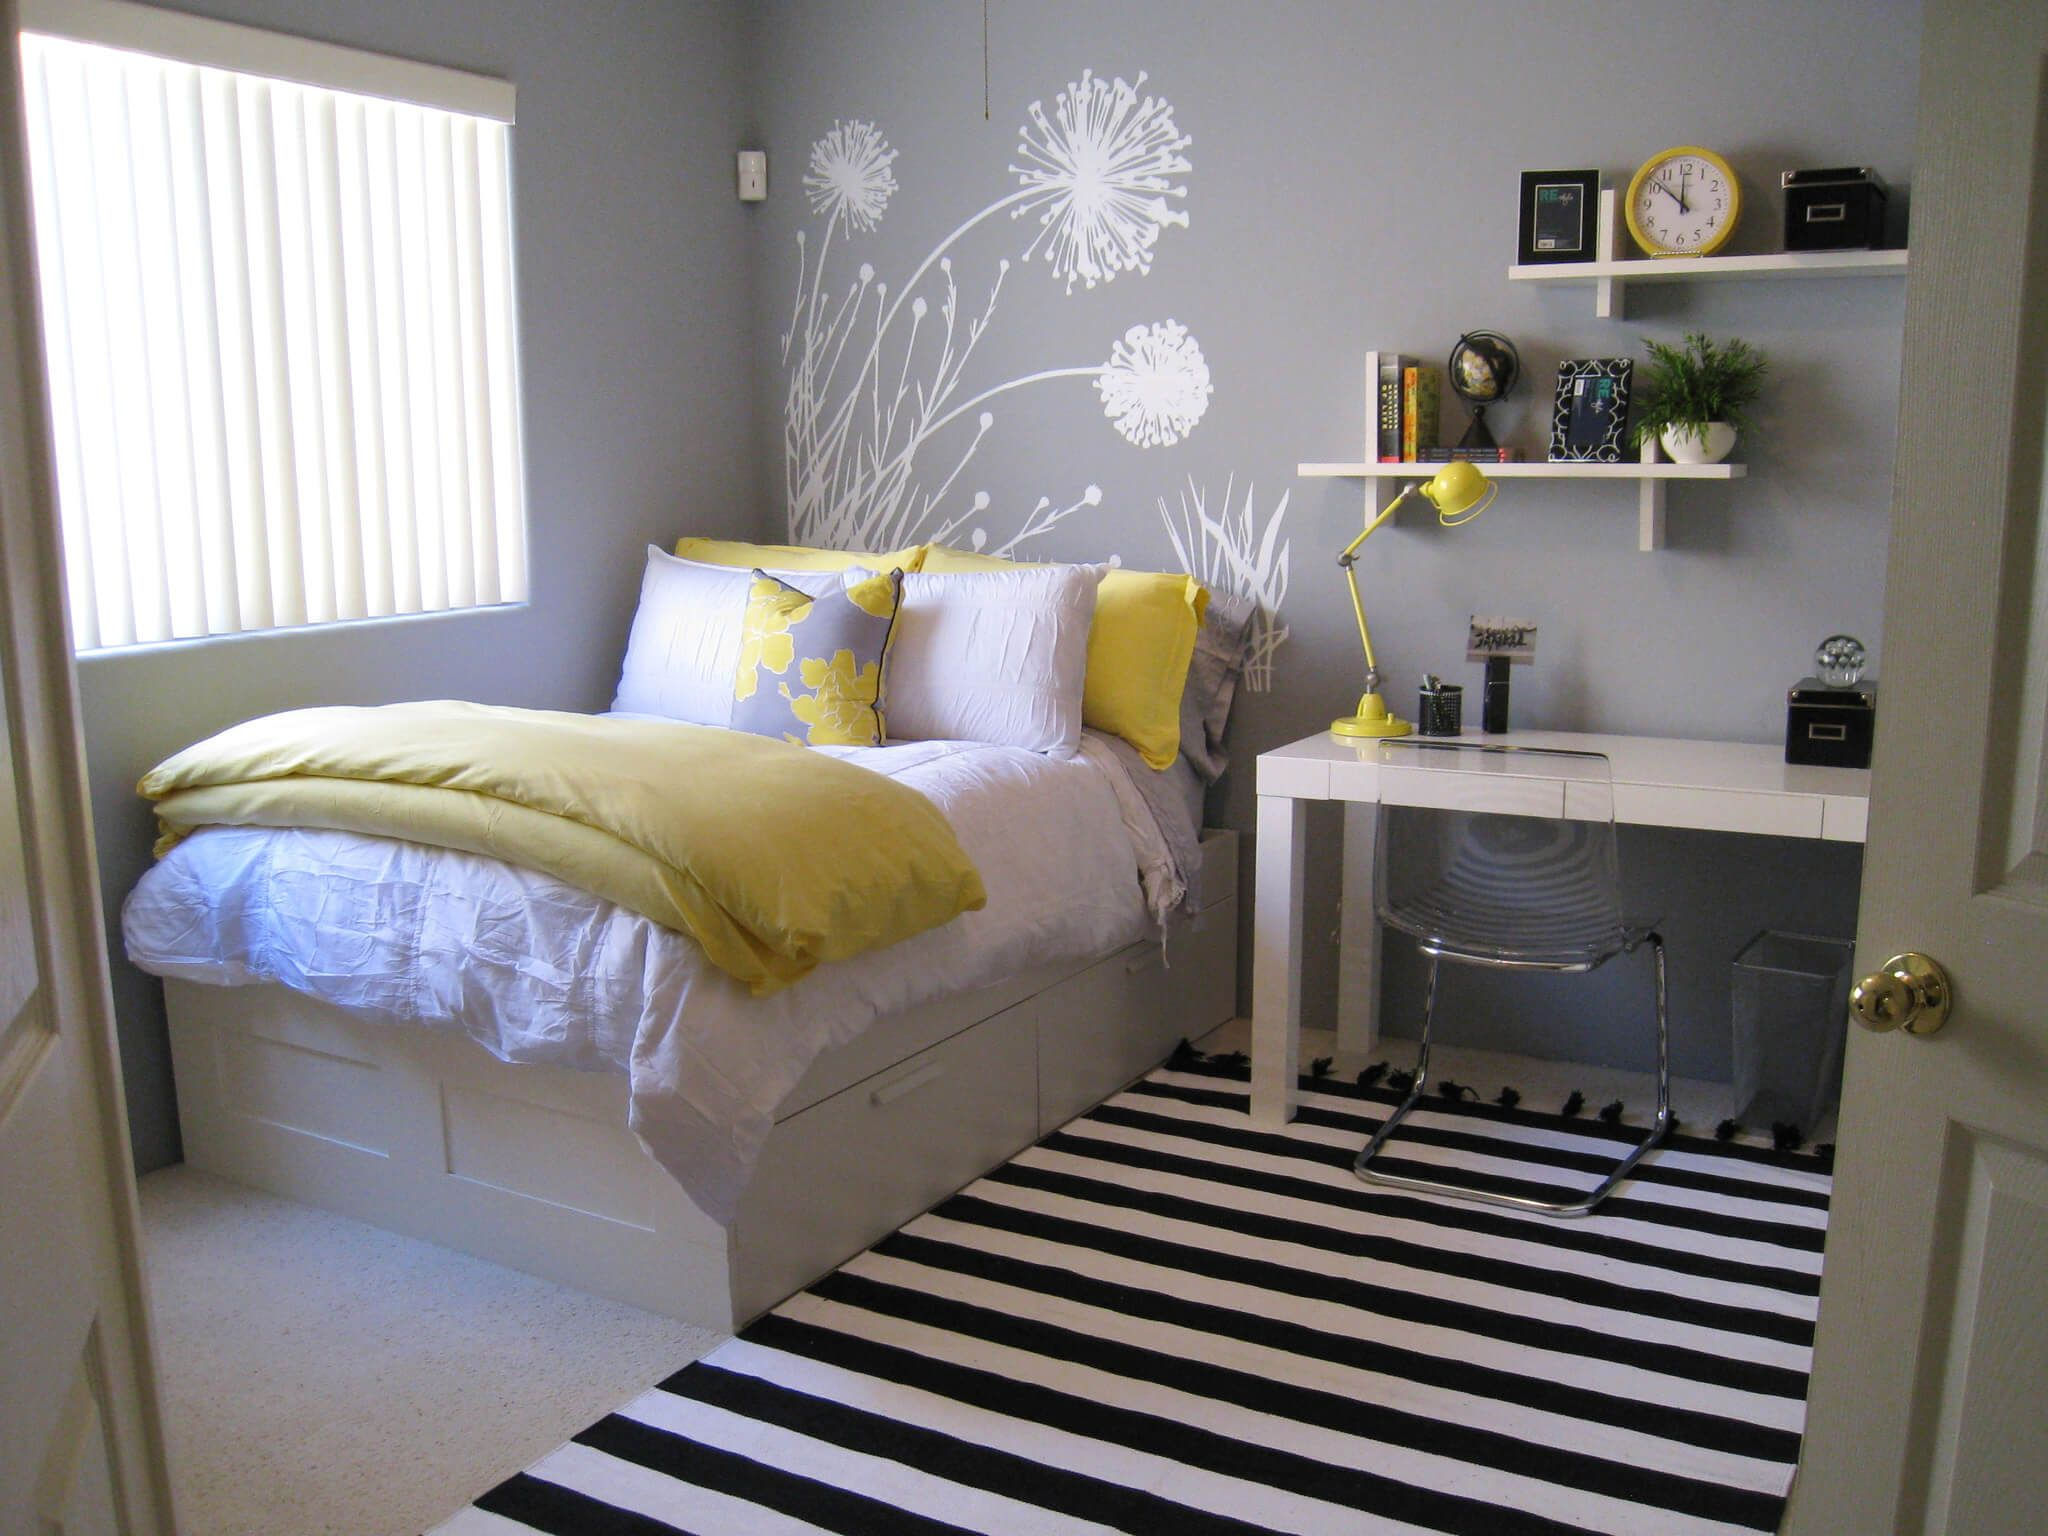 decorating a small bedroom ideas - home design minimalist